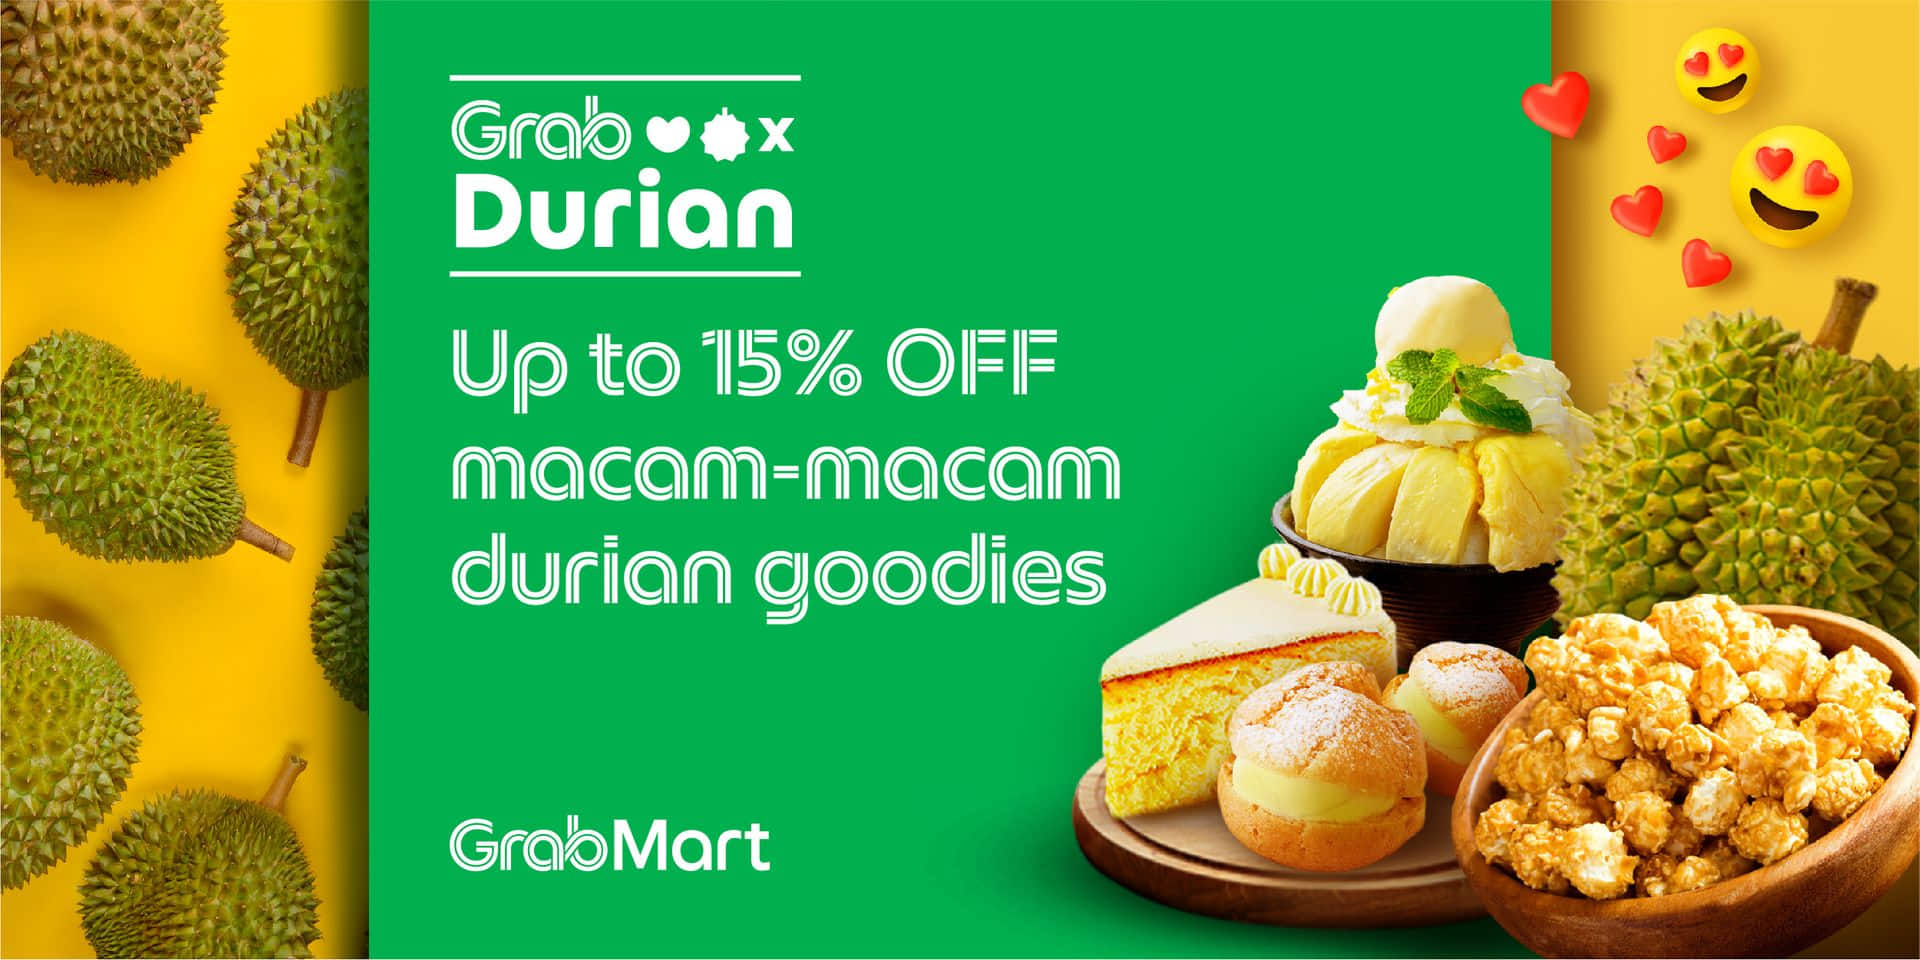 Grab Durian Now on Grab Food: Grab Spreads #TechUntukSemua Effort to Support Local Durian Farmers and Sellers 19